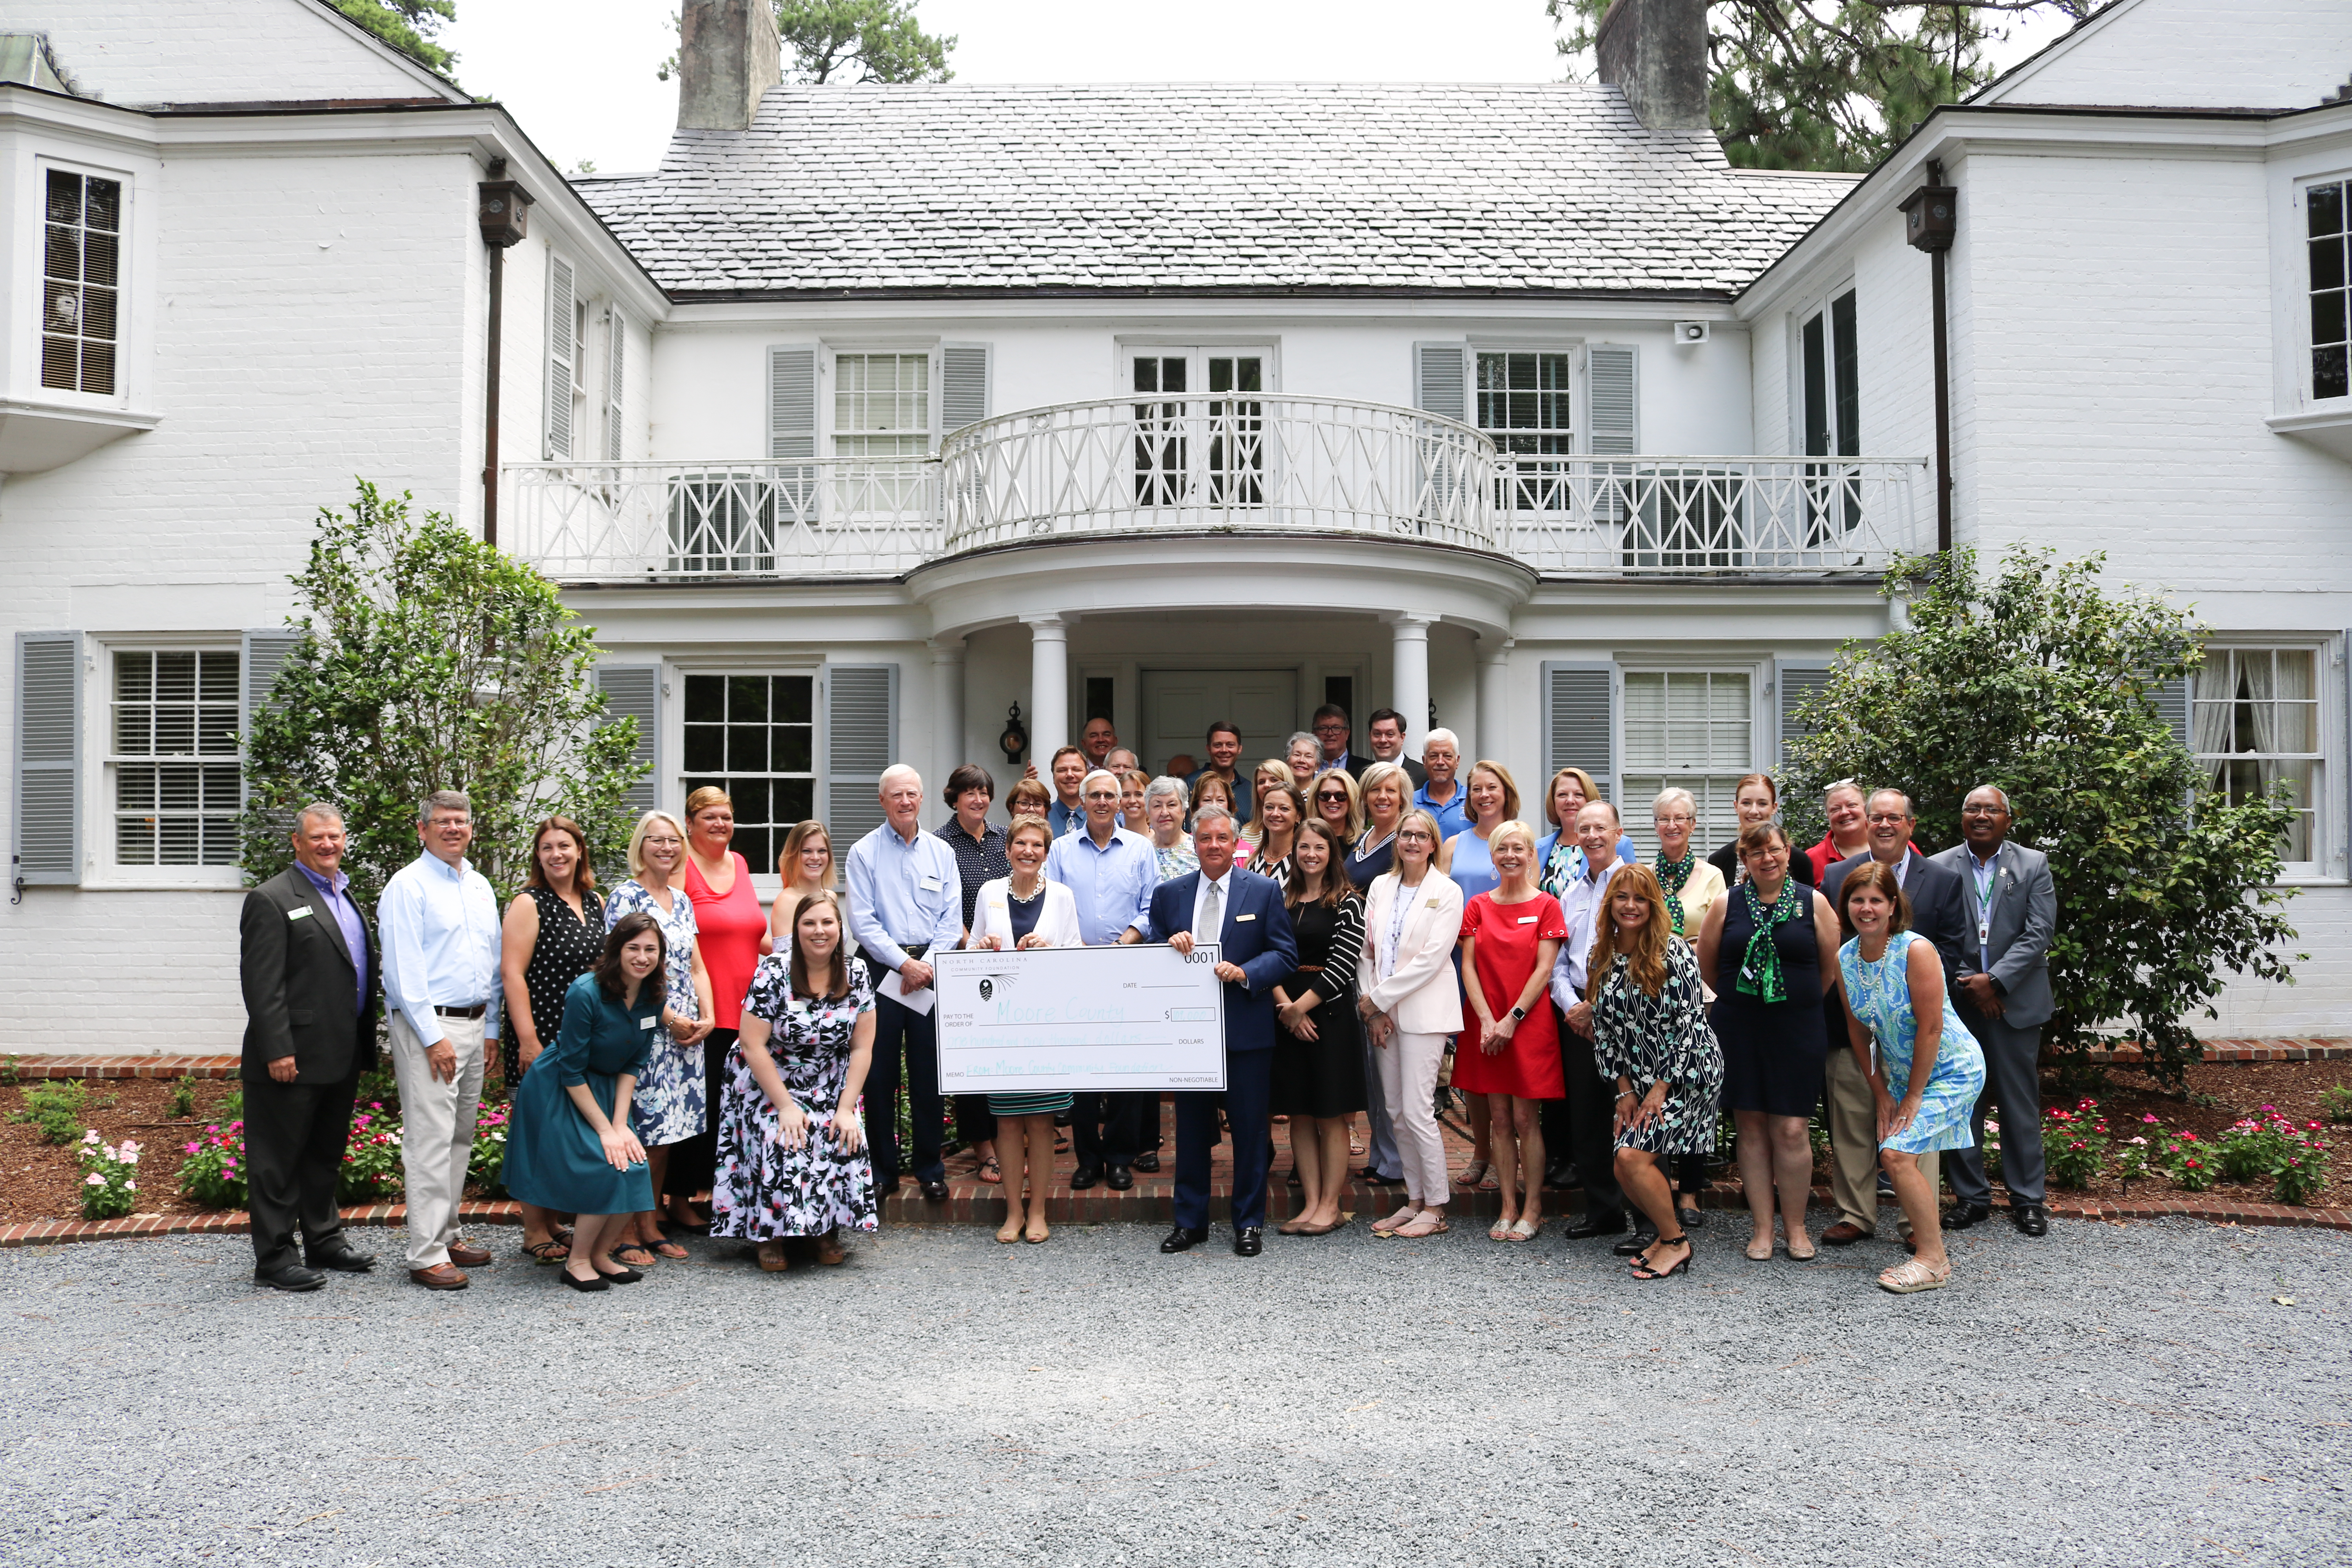 The Moore County Community Foundation celebrated local grantmaking this summer, announcing more than $109,000 in community grants. NCCF affiliates' annual grantmaking programs make a difference in local communities throughout the state, supporting nonprofit programs that enrich and enhance our lives.